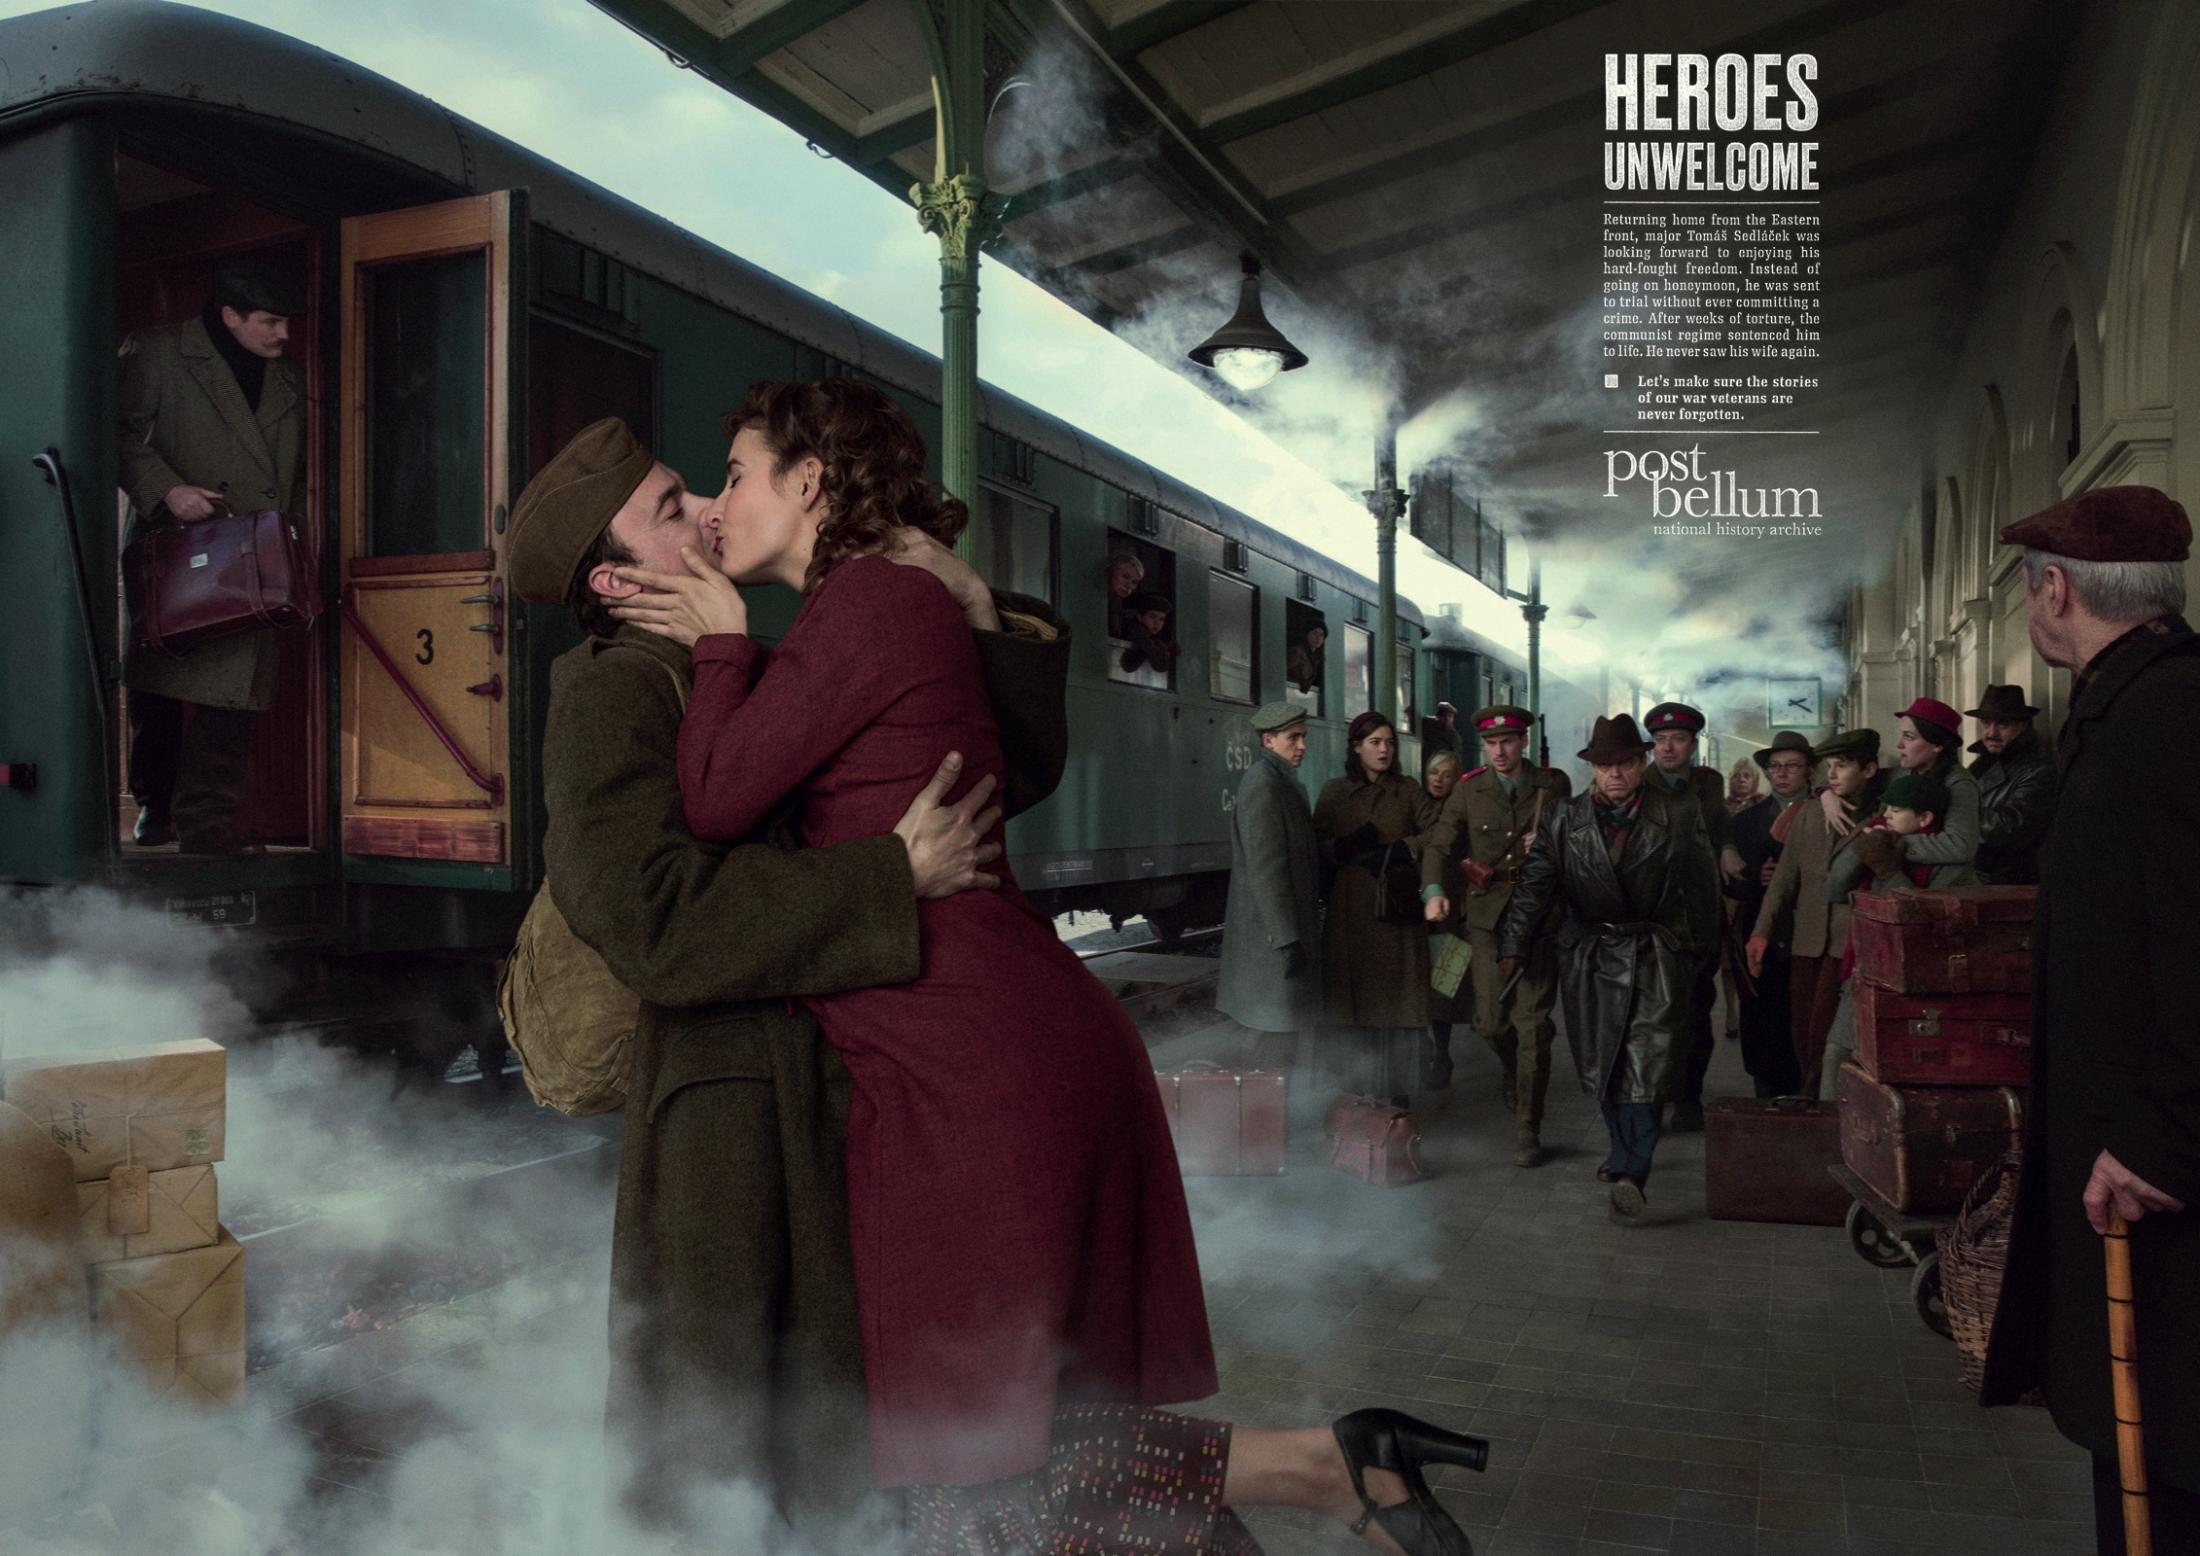 Post Bellum Print Ad - Heroes Unwelcome - Train Station